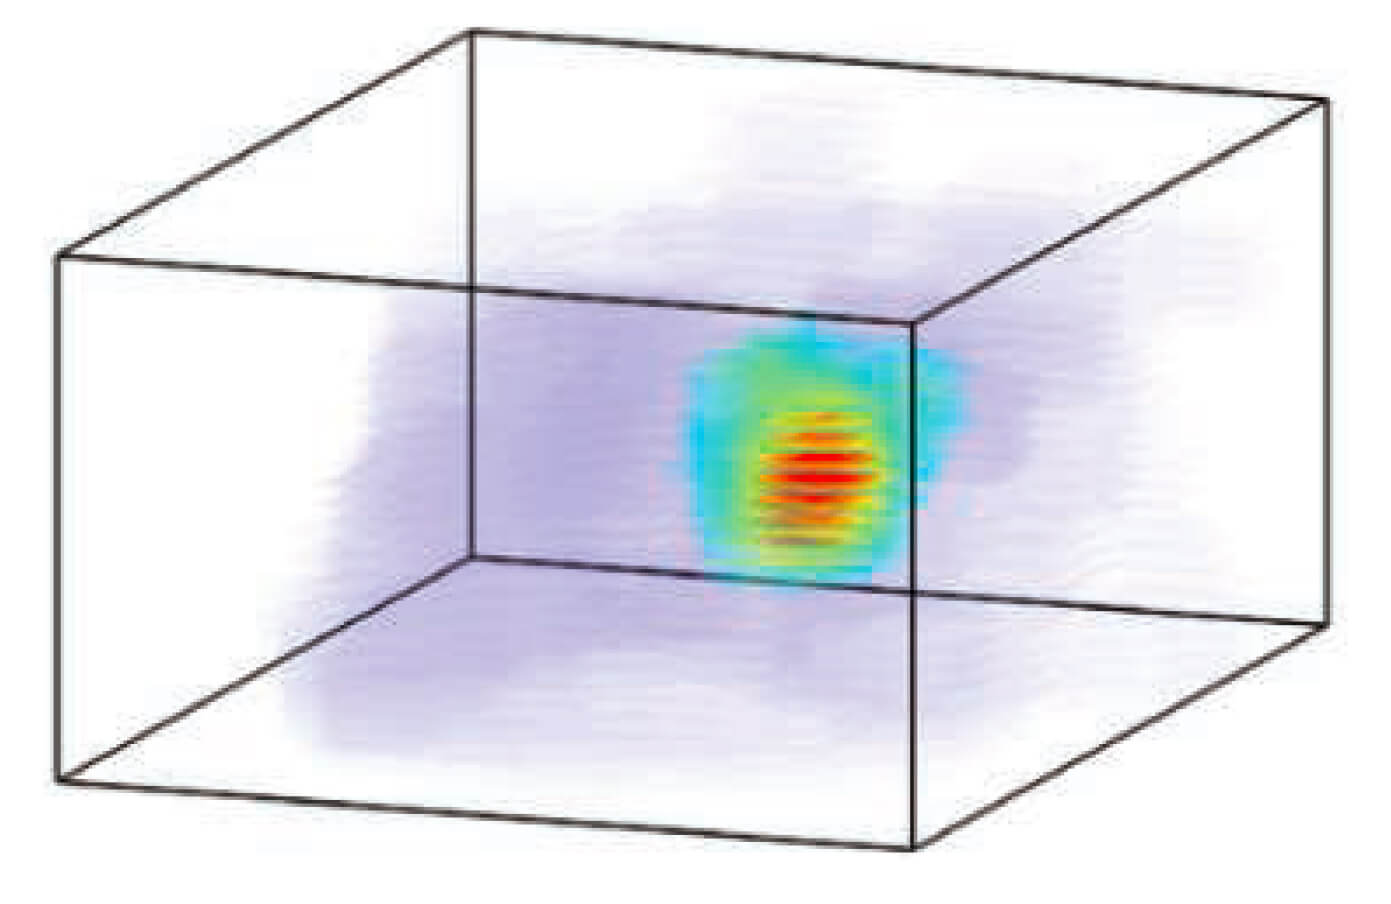 3D place field of a single hippocampal place cell recorded from a freely flying bat. In his 2013 Science paper, Yartsev showed that each place cell reliably discharged when the bat flew through a specific field of space. Collectively, the 3D place fields of all recorded place cells spanned the available space in the room. Click image to go to paper.